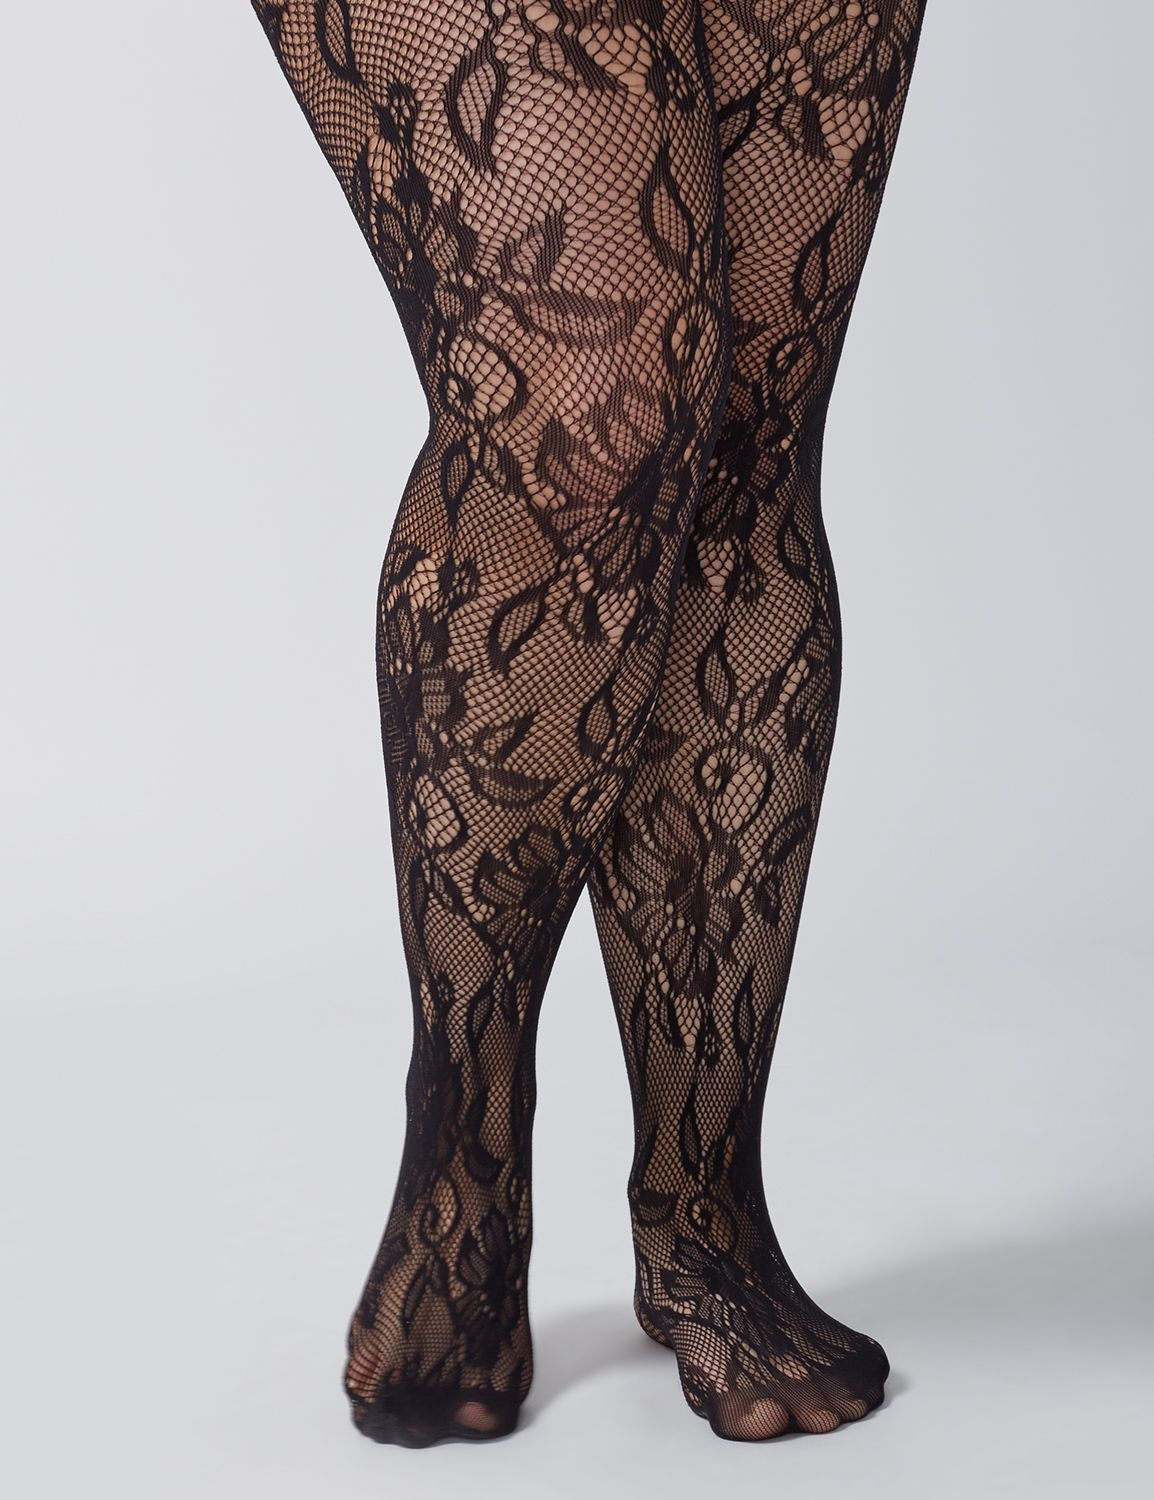 Victorian Inspired Womens Clothing Lane Bryant Womens Fishnet Floral Tights E-F Black $19.95 AT vintagedancer.com